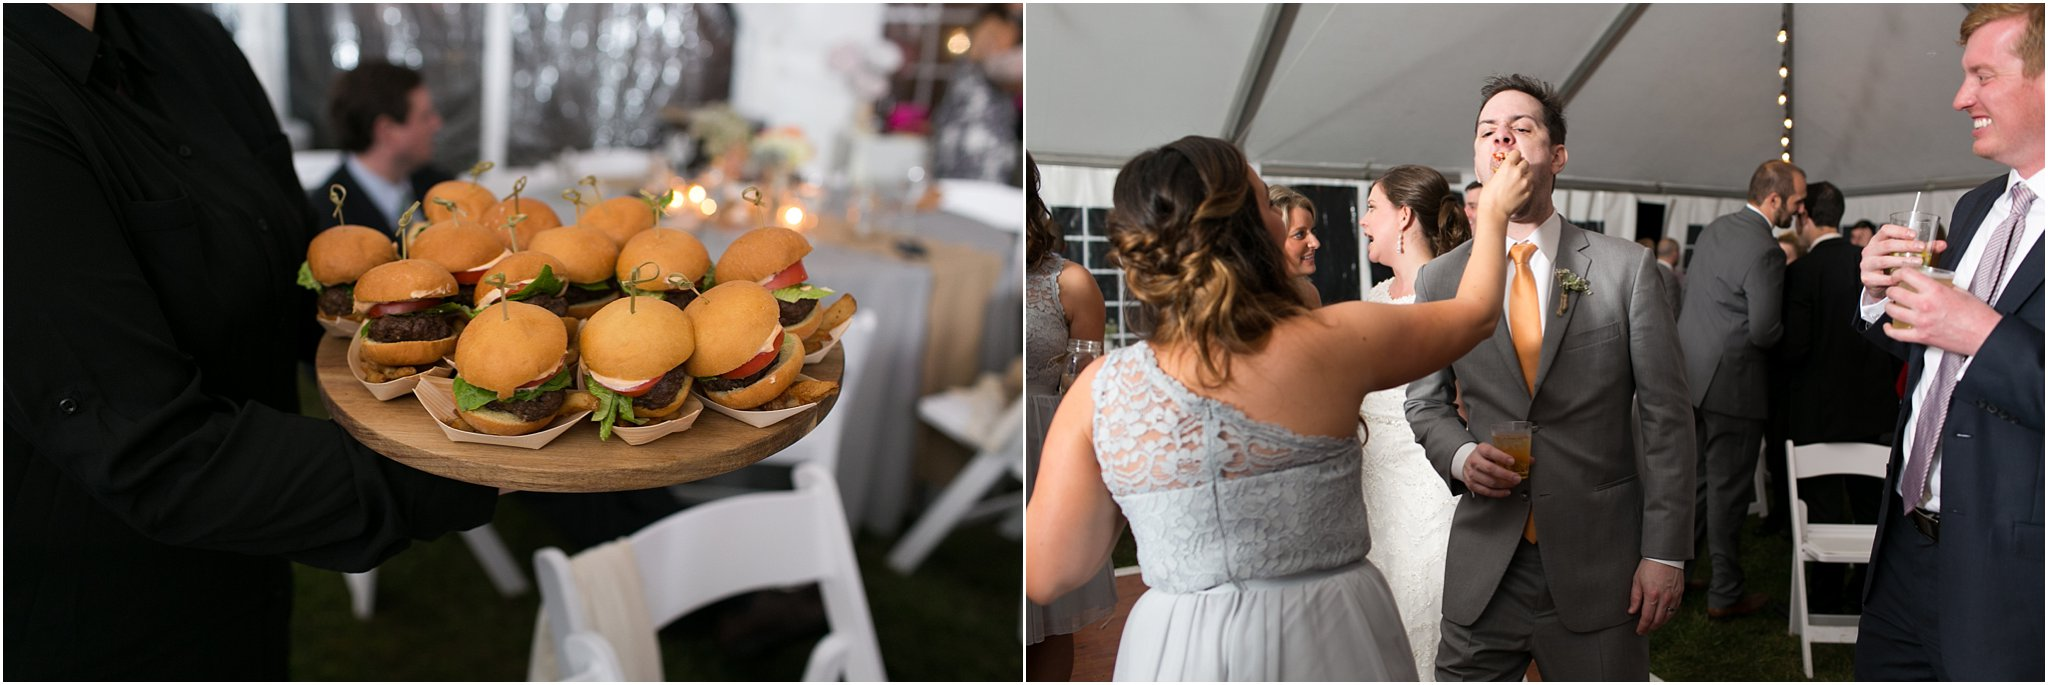 jessica_ryan_photography_holly_ridge_manor_wedding_roost_flowers_jamie_leigh_events_dhalia_edwards_candid_vibrant_wedding_colors_1370